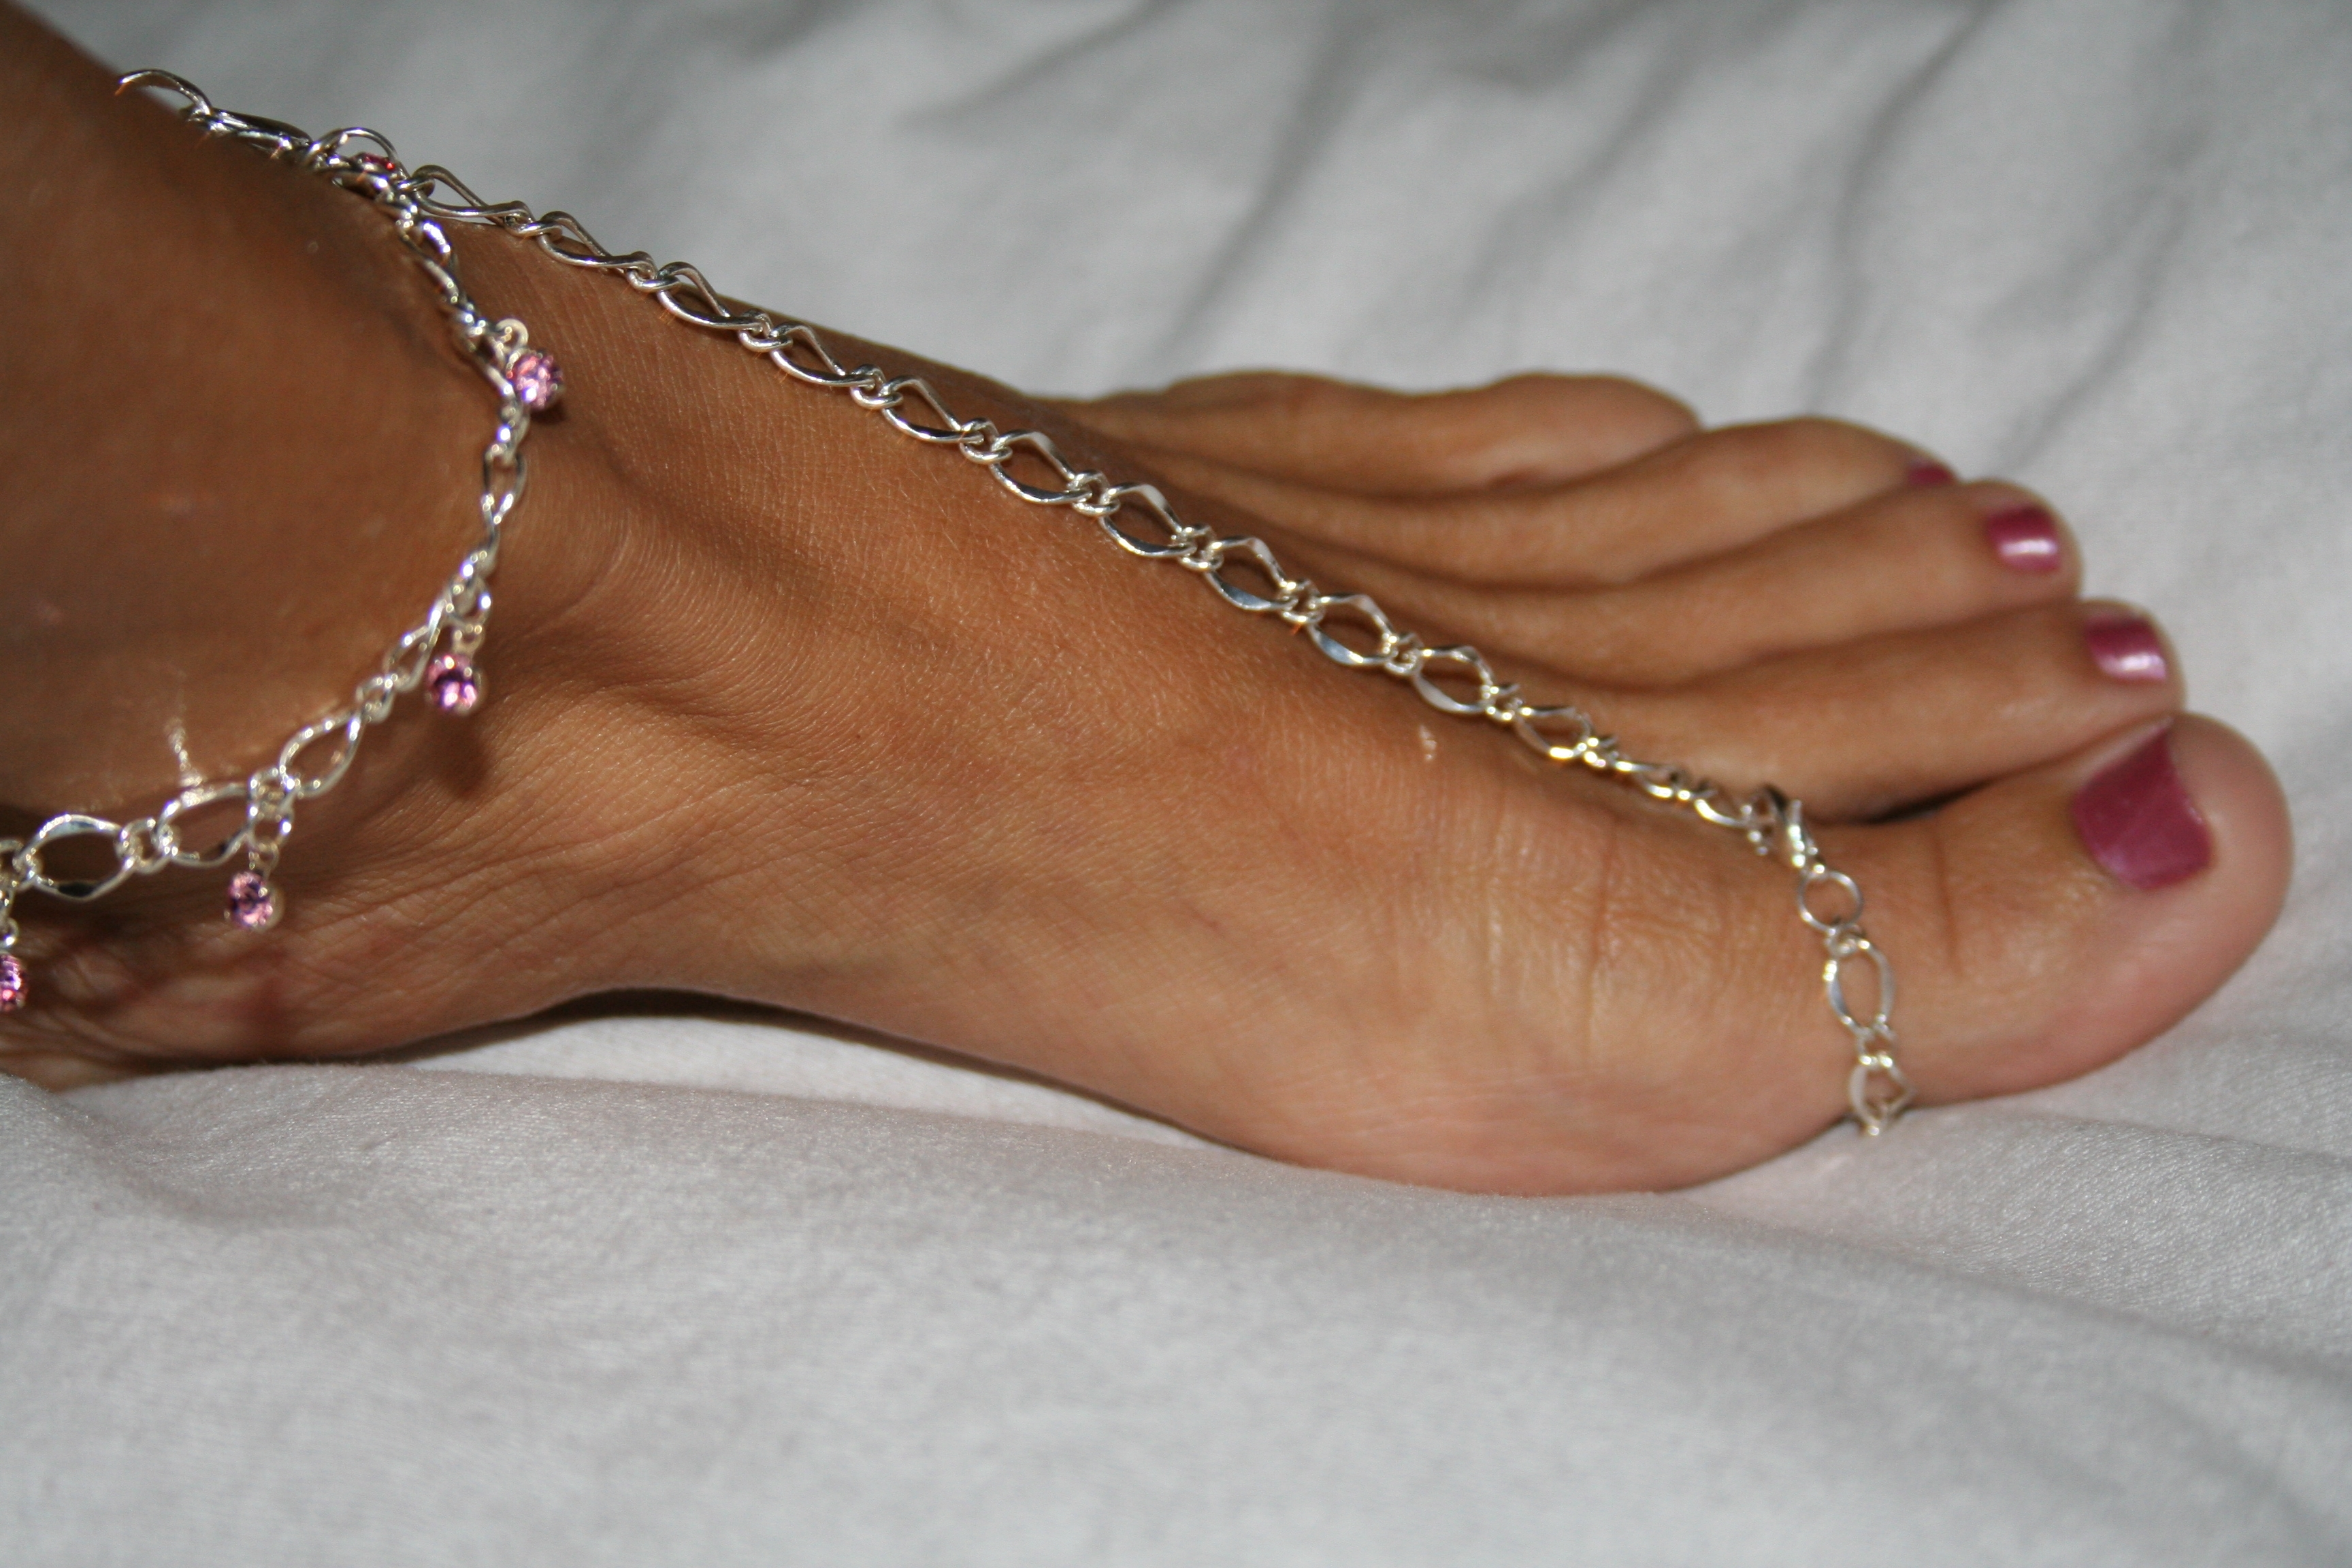 matching ksvhs jewellery anklet pretty bracelets feet unique on string ankle beach